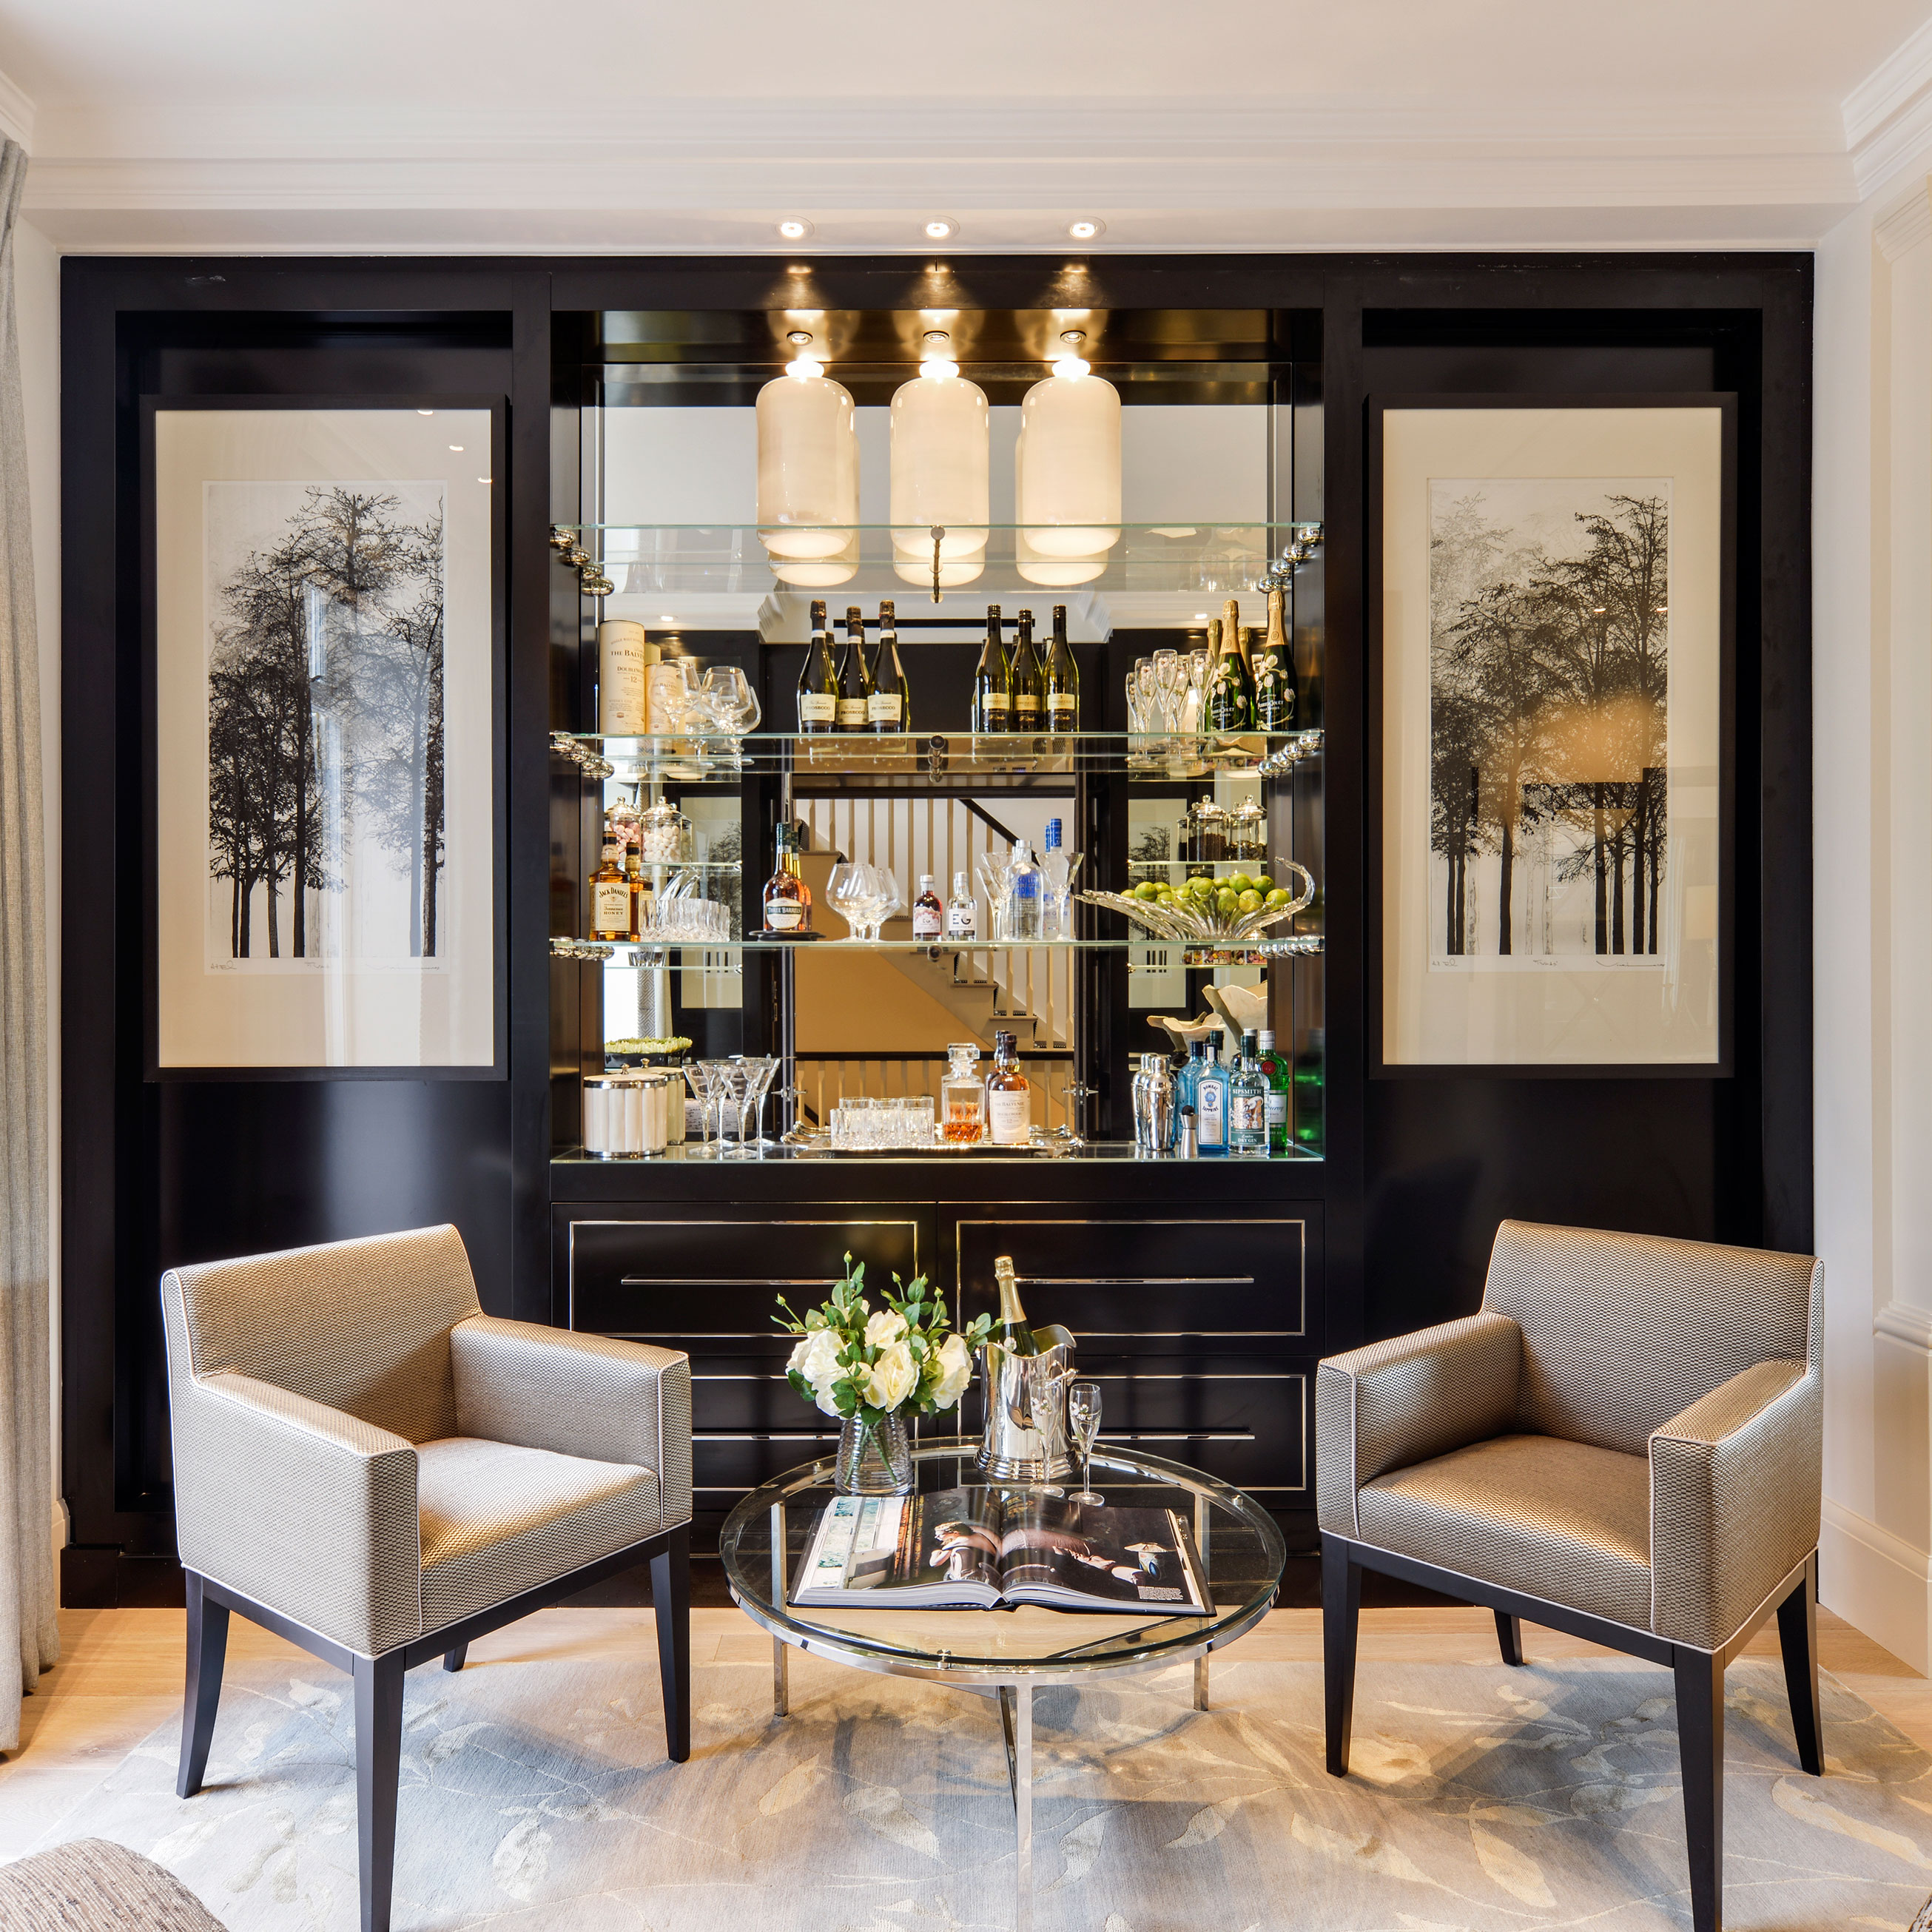 The location carlyle square is situated just off the kings road and is one of the most sought after and well maintained garden squares in chelsea